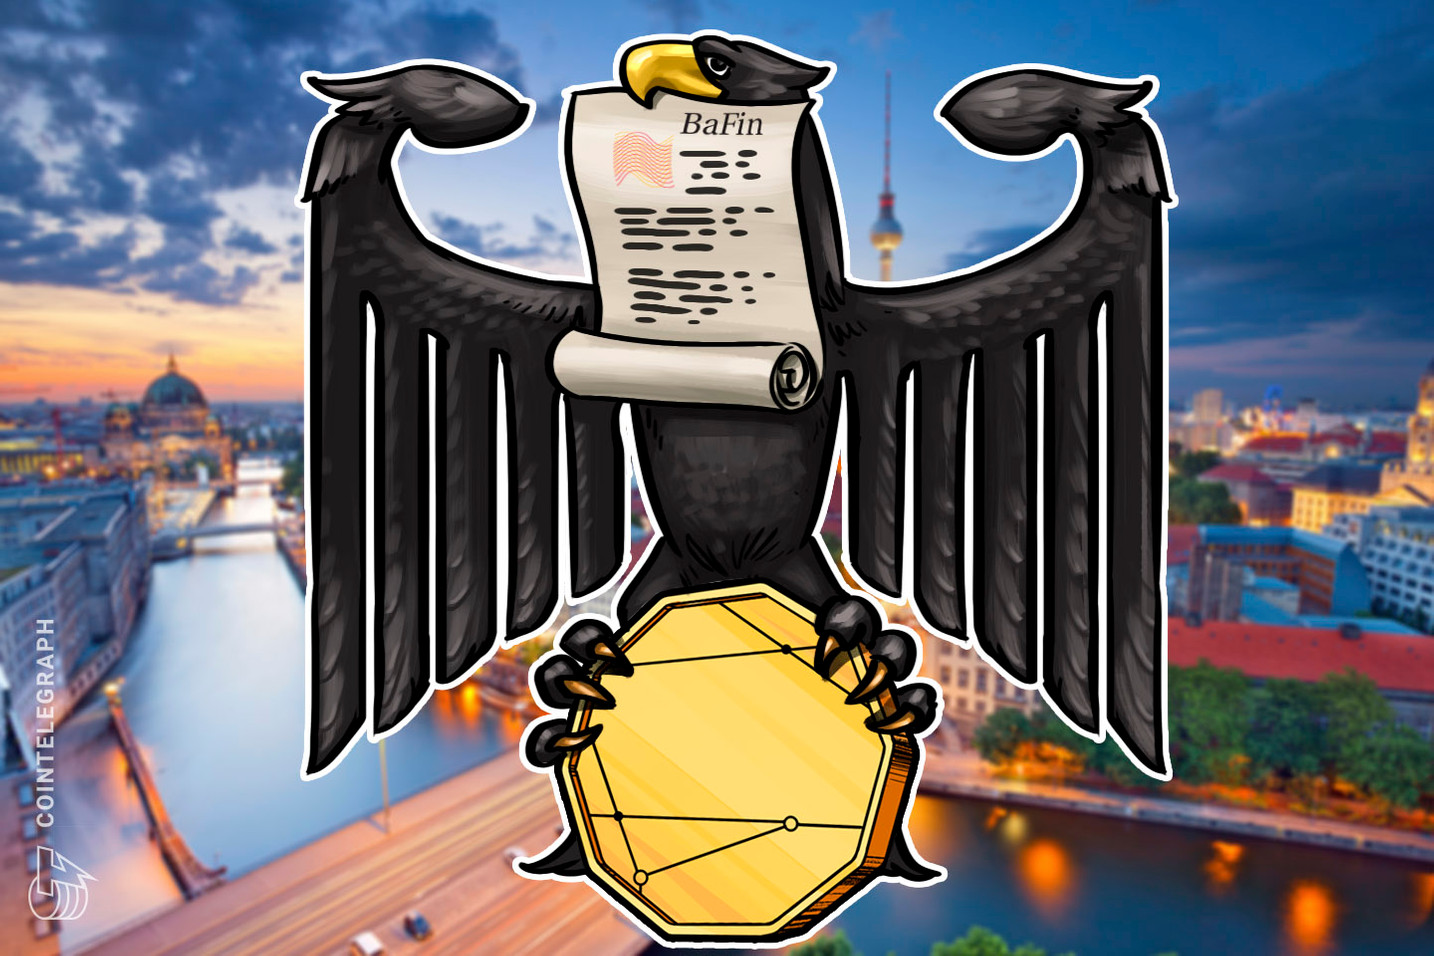 German Regulator Flags Crypto Broker for Operating Without License